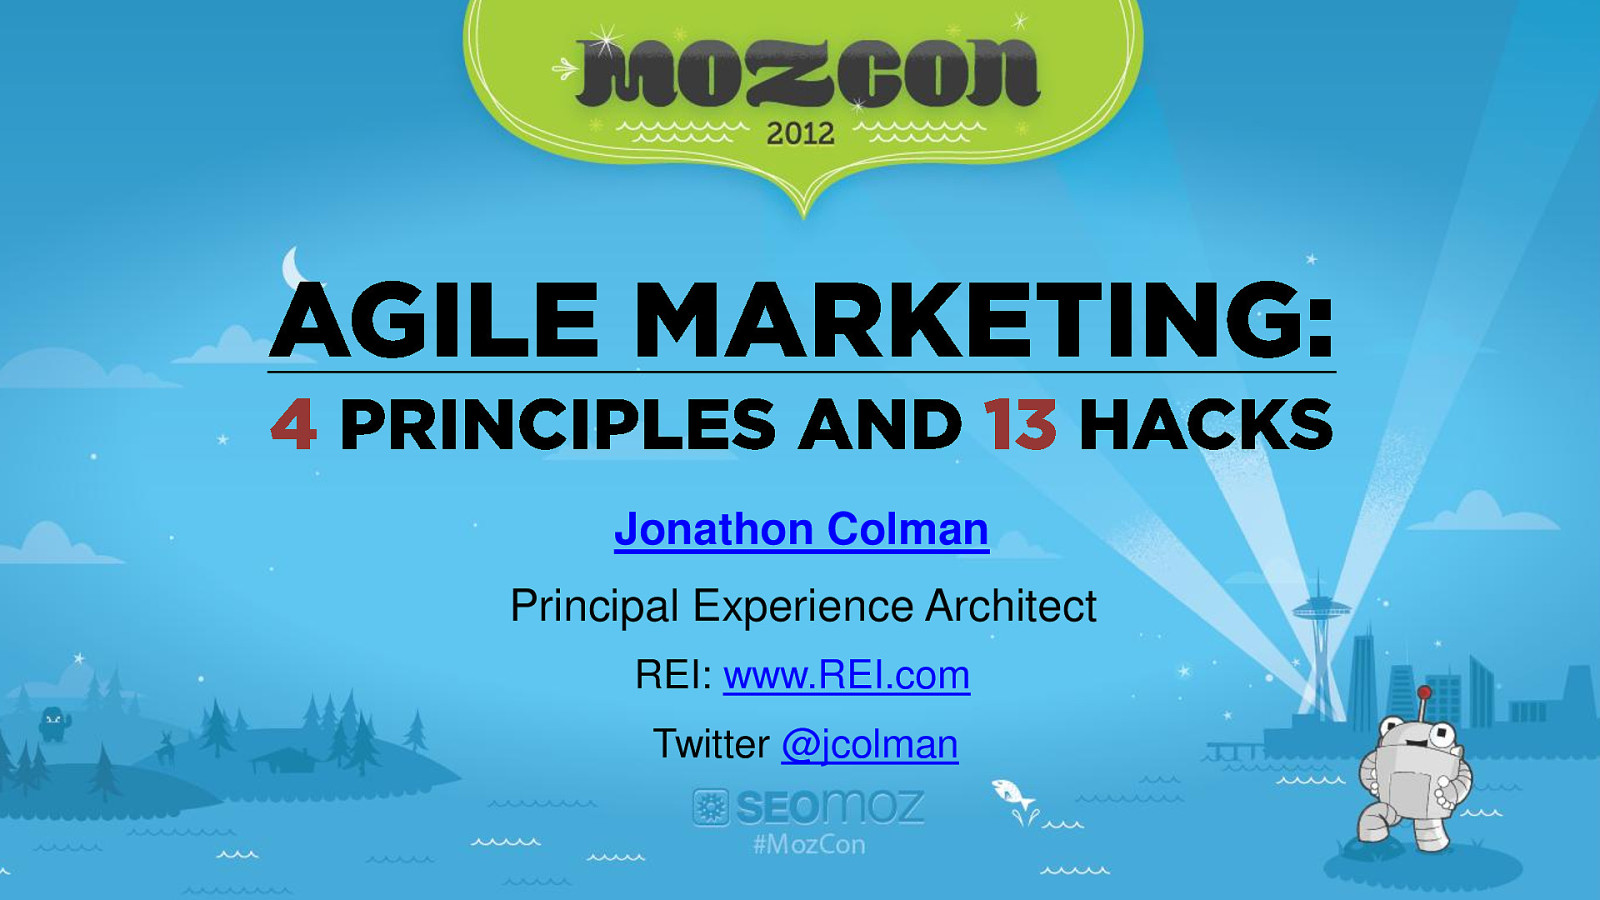 Agile Marketing: 4 Principles and 13 Hacks